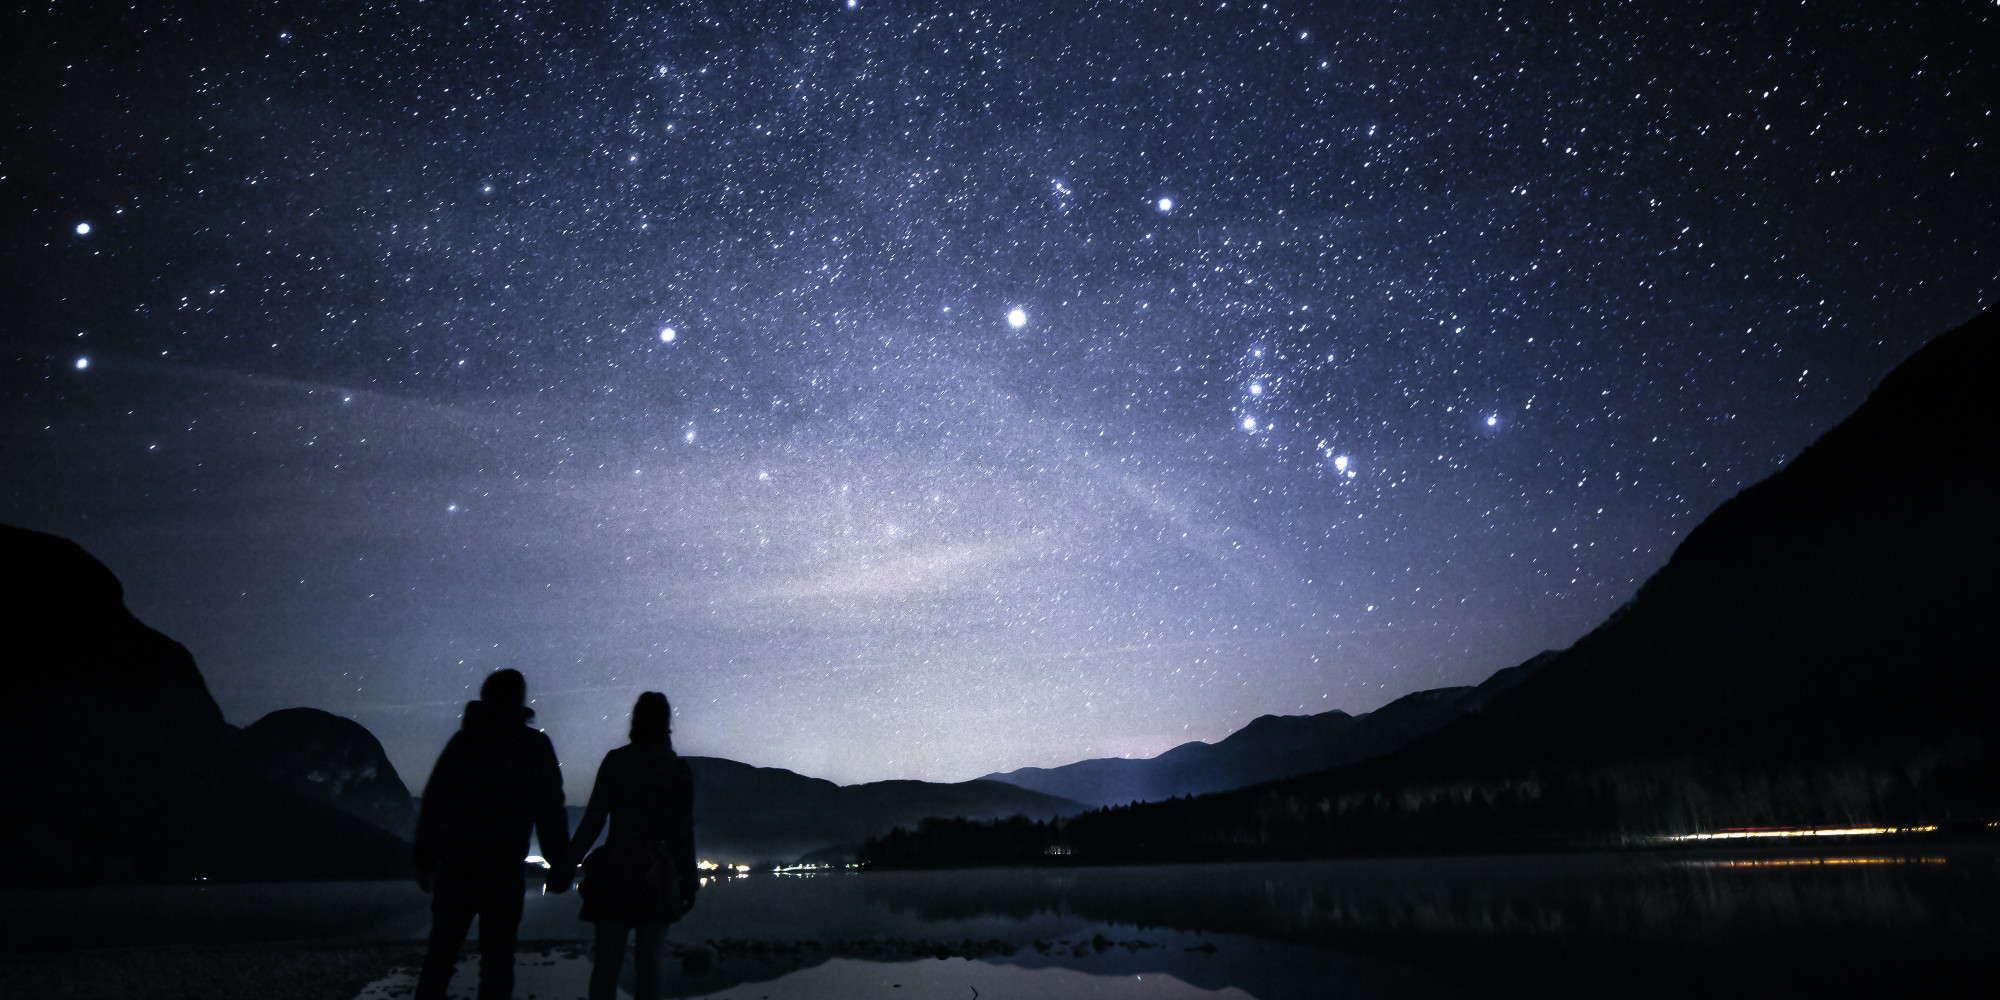 star gazing and astronomy - photo #14